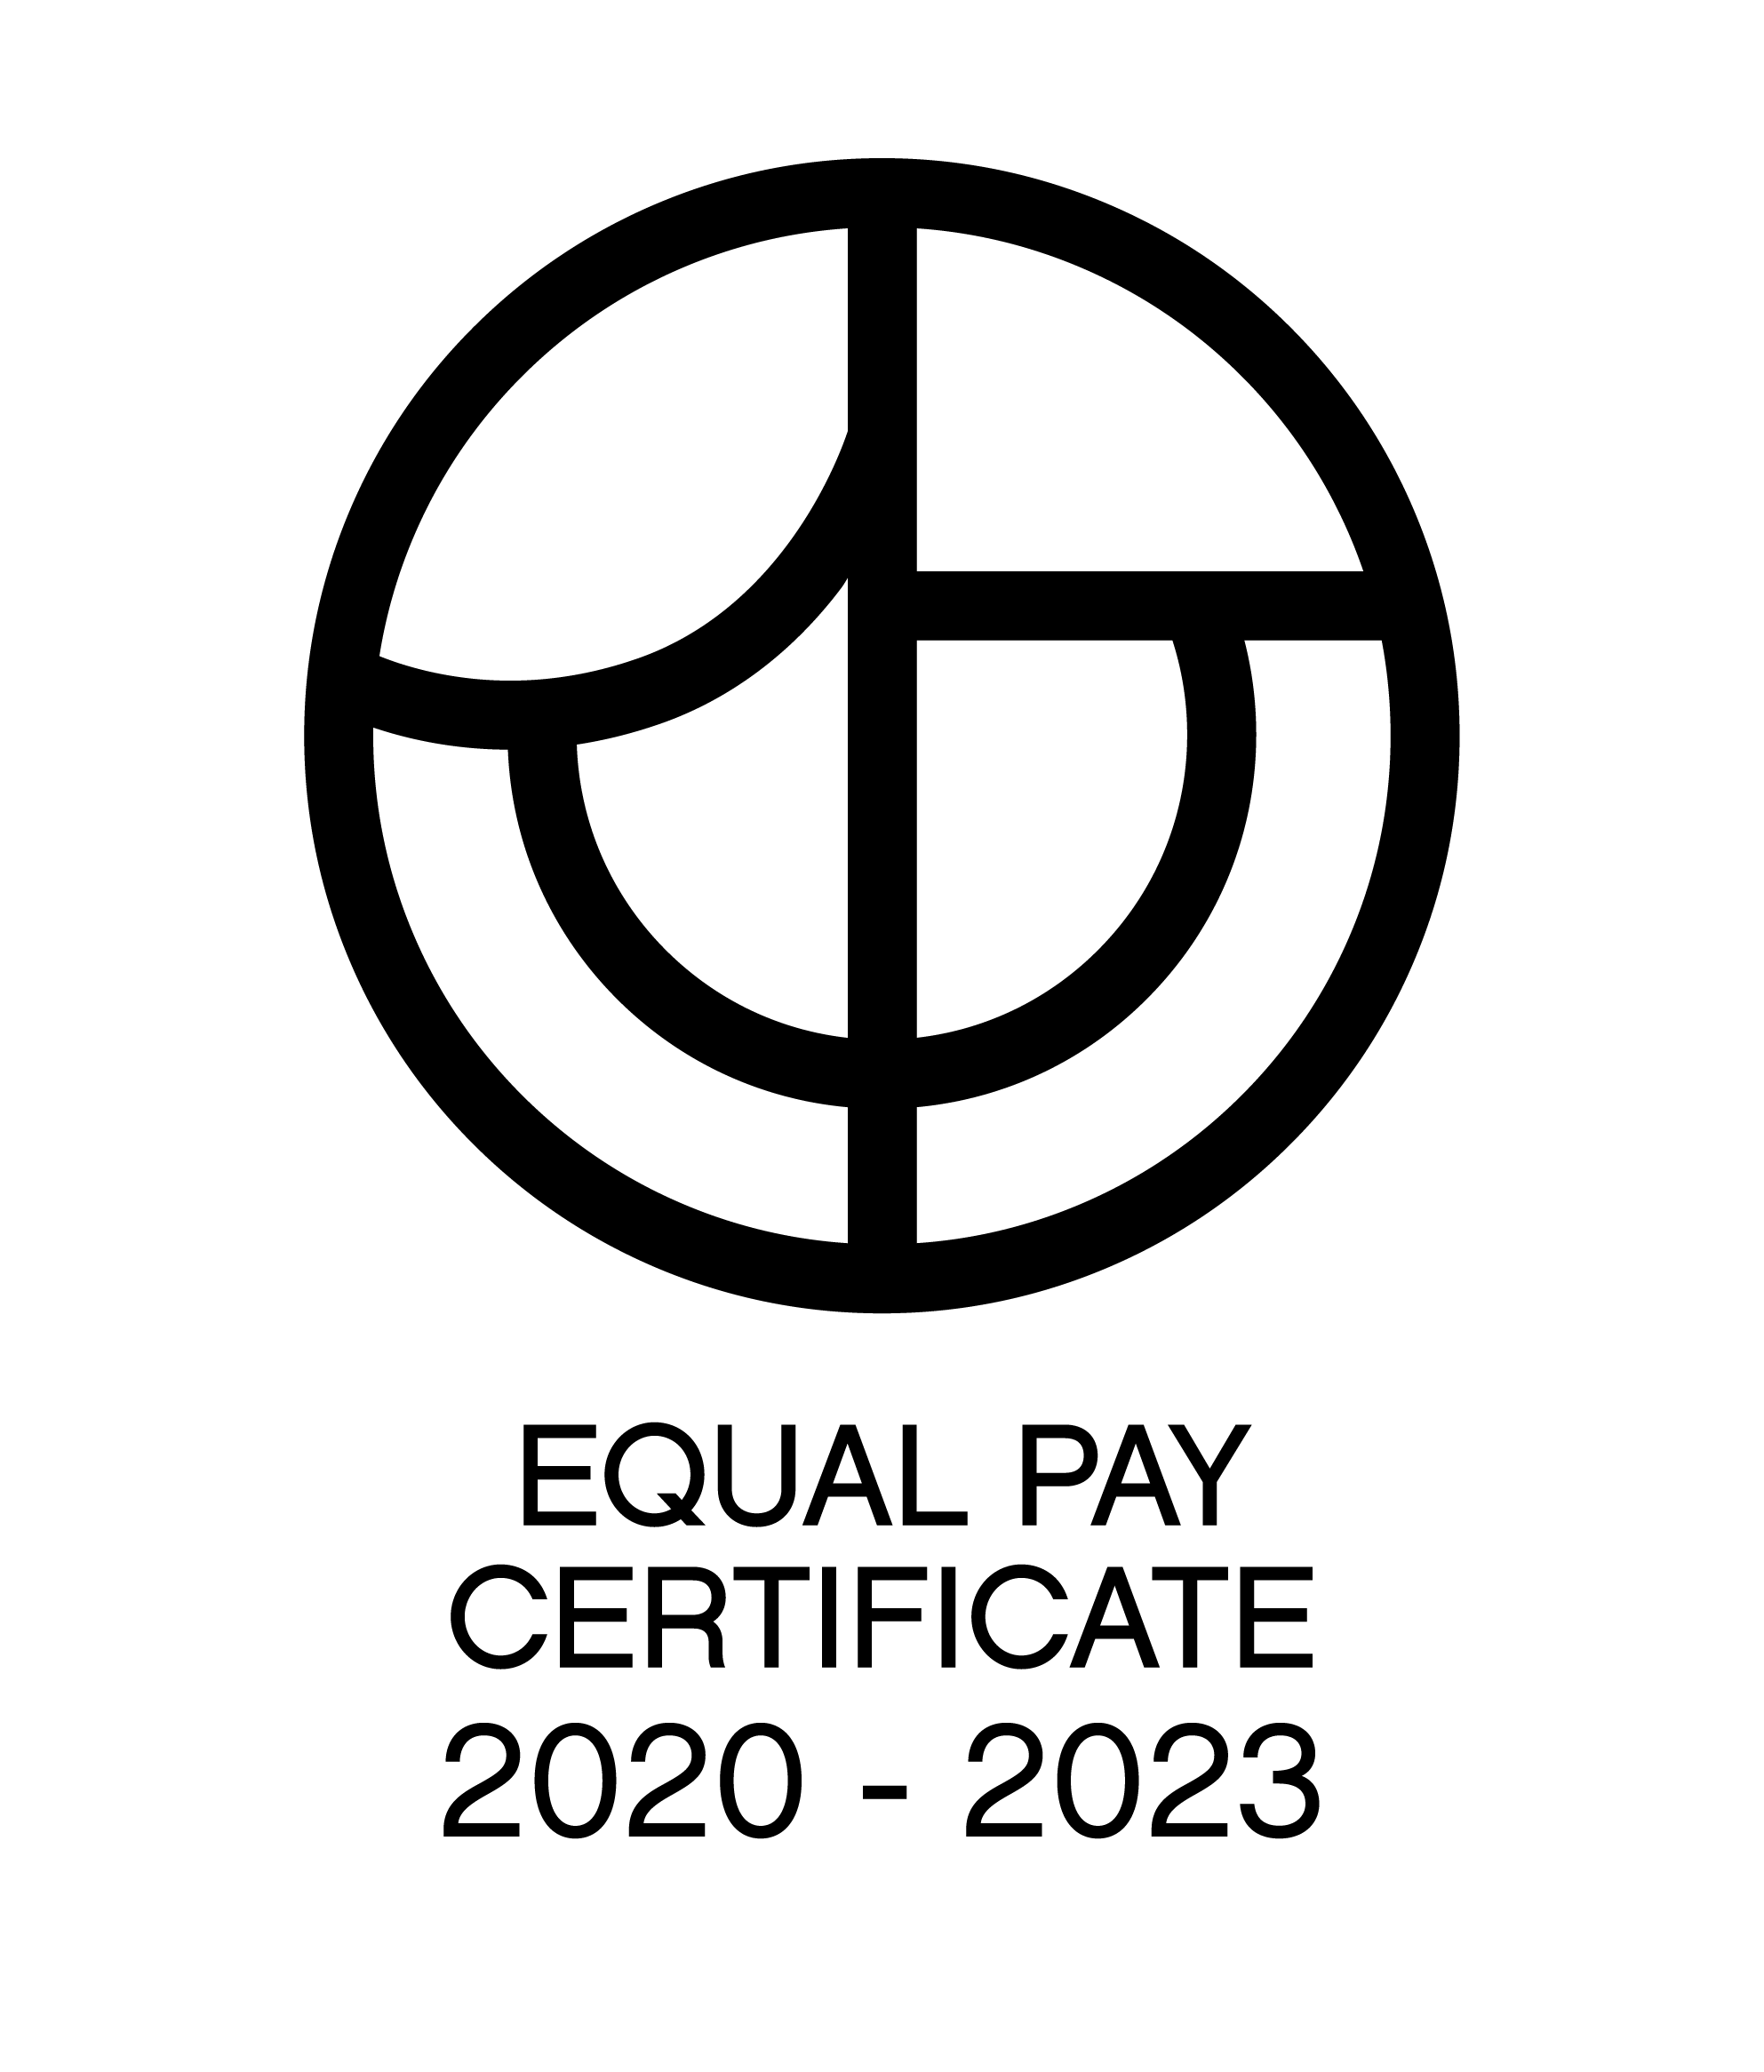 EqualPay 2020 2023 primaryUse on light background